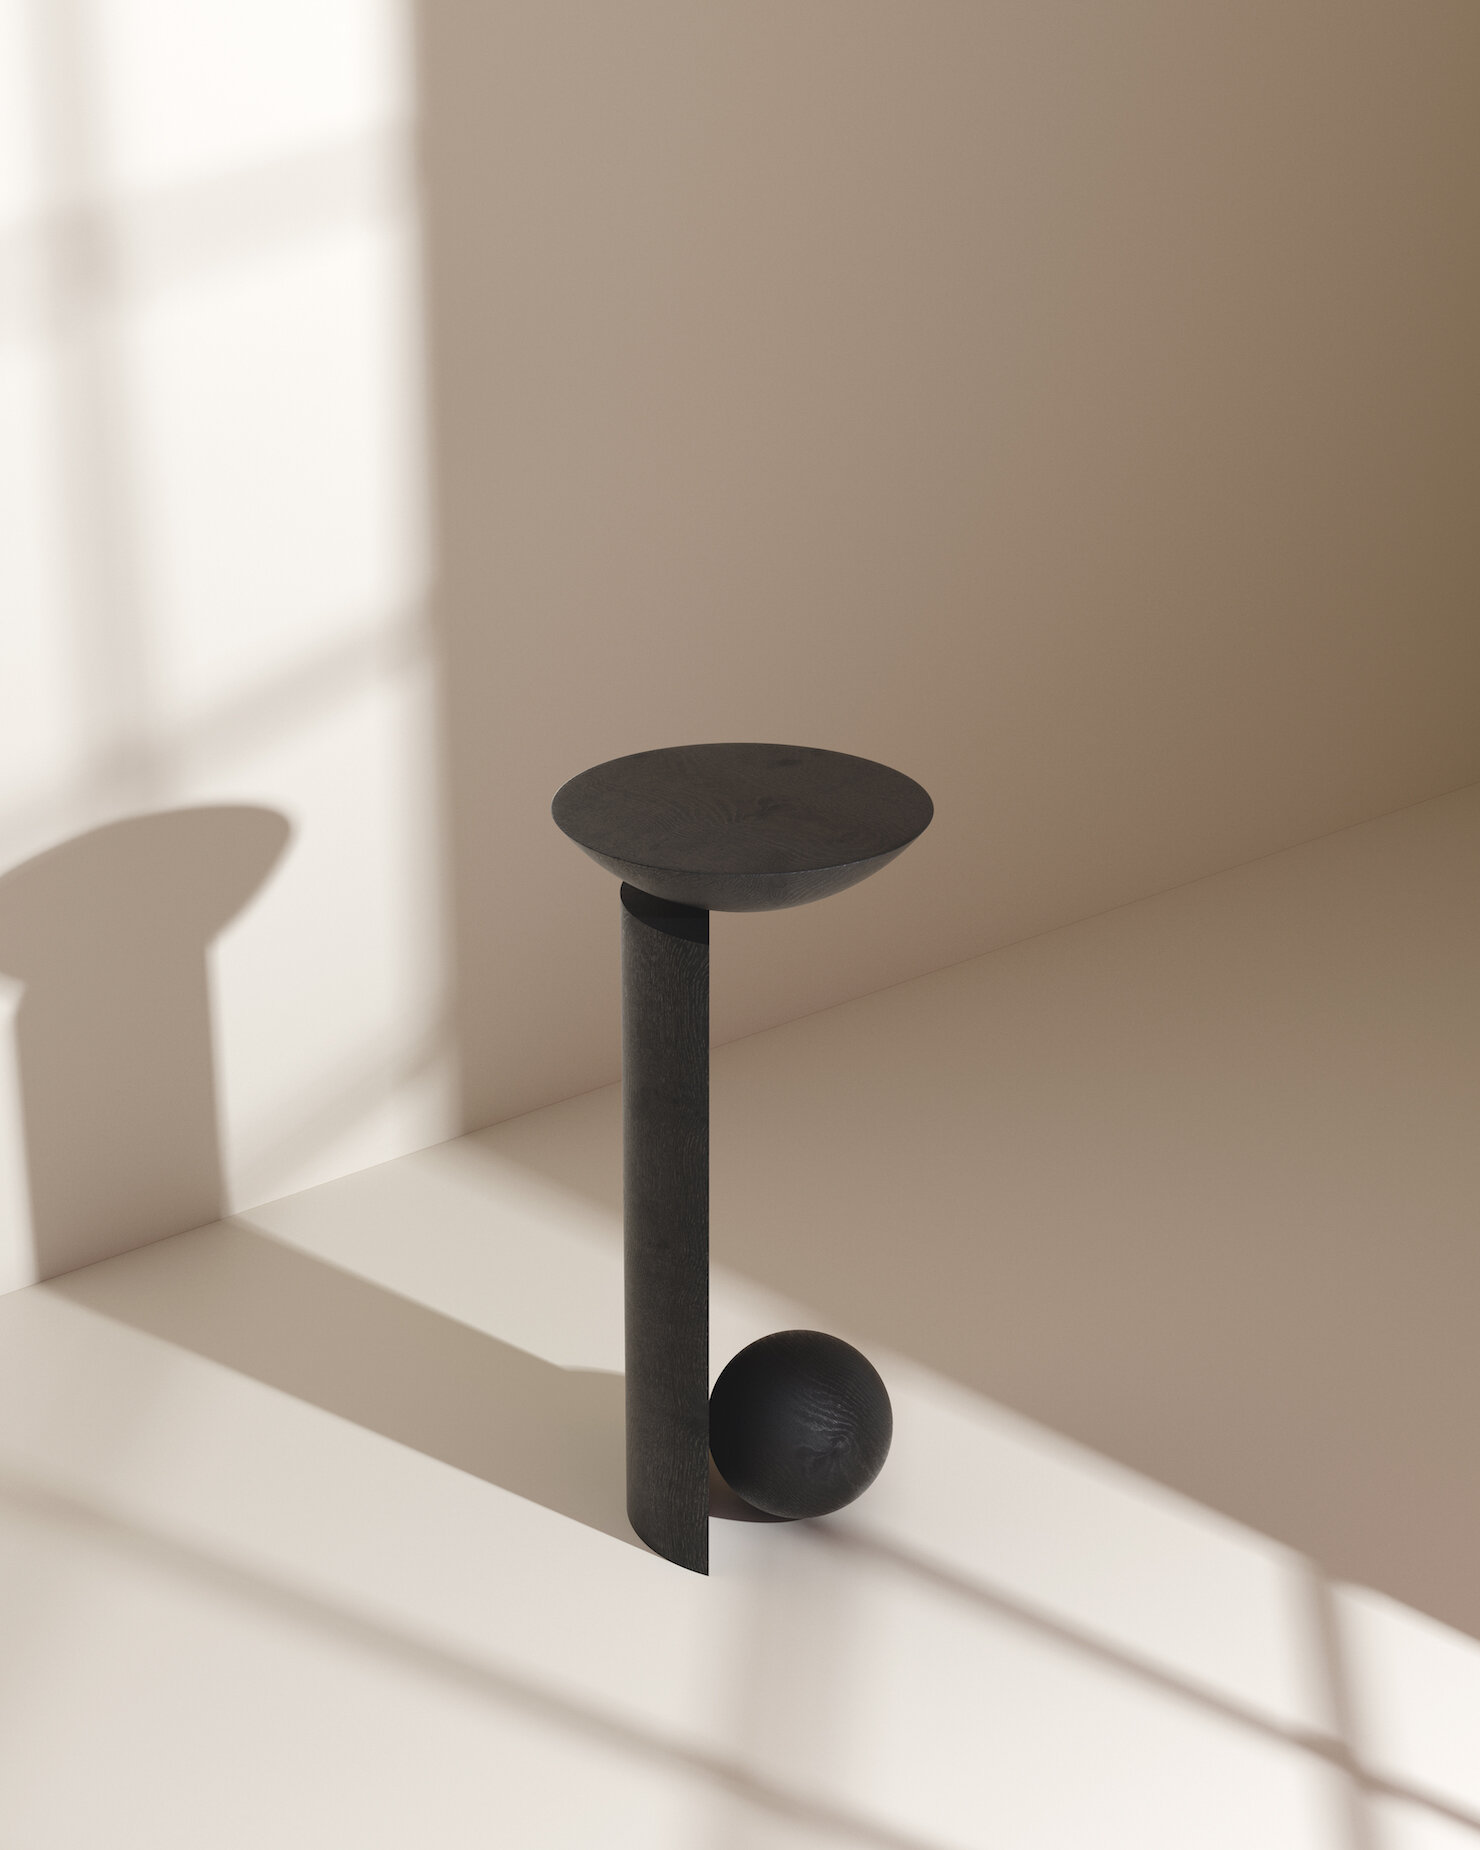 Triptico Infame Stools by Pedro Venzon from Brazil featured by Pendulum Magazine